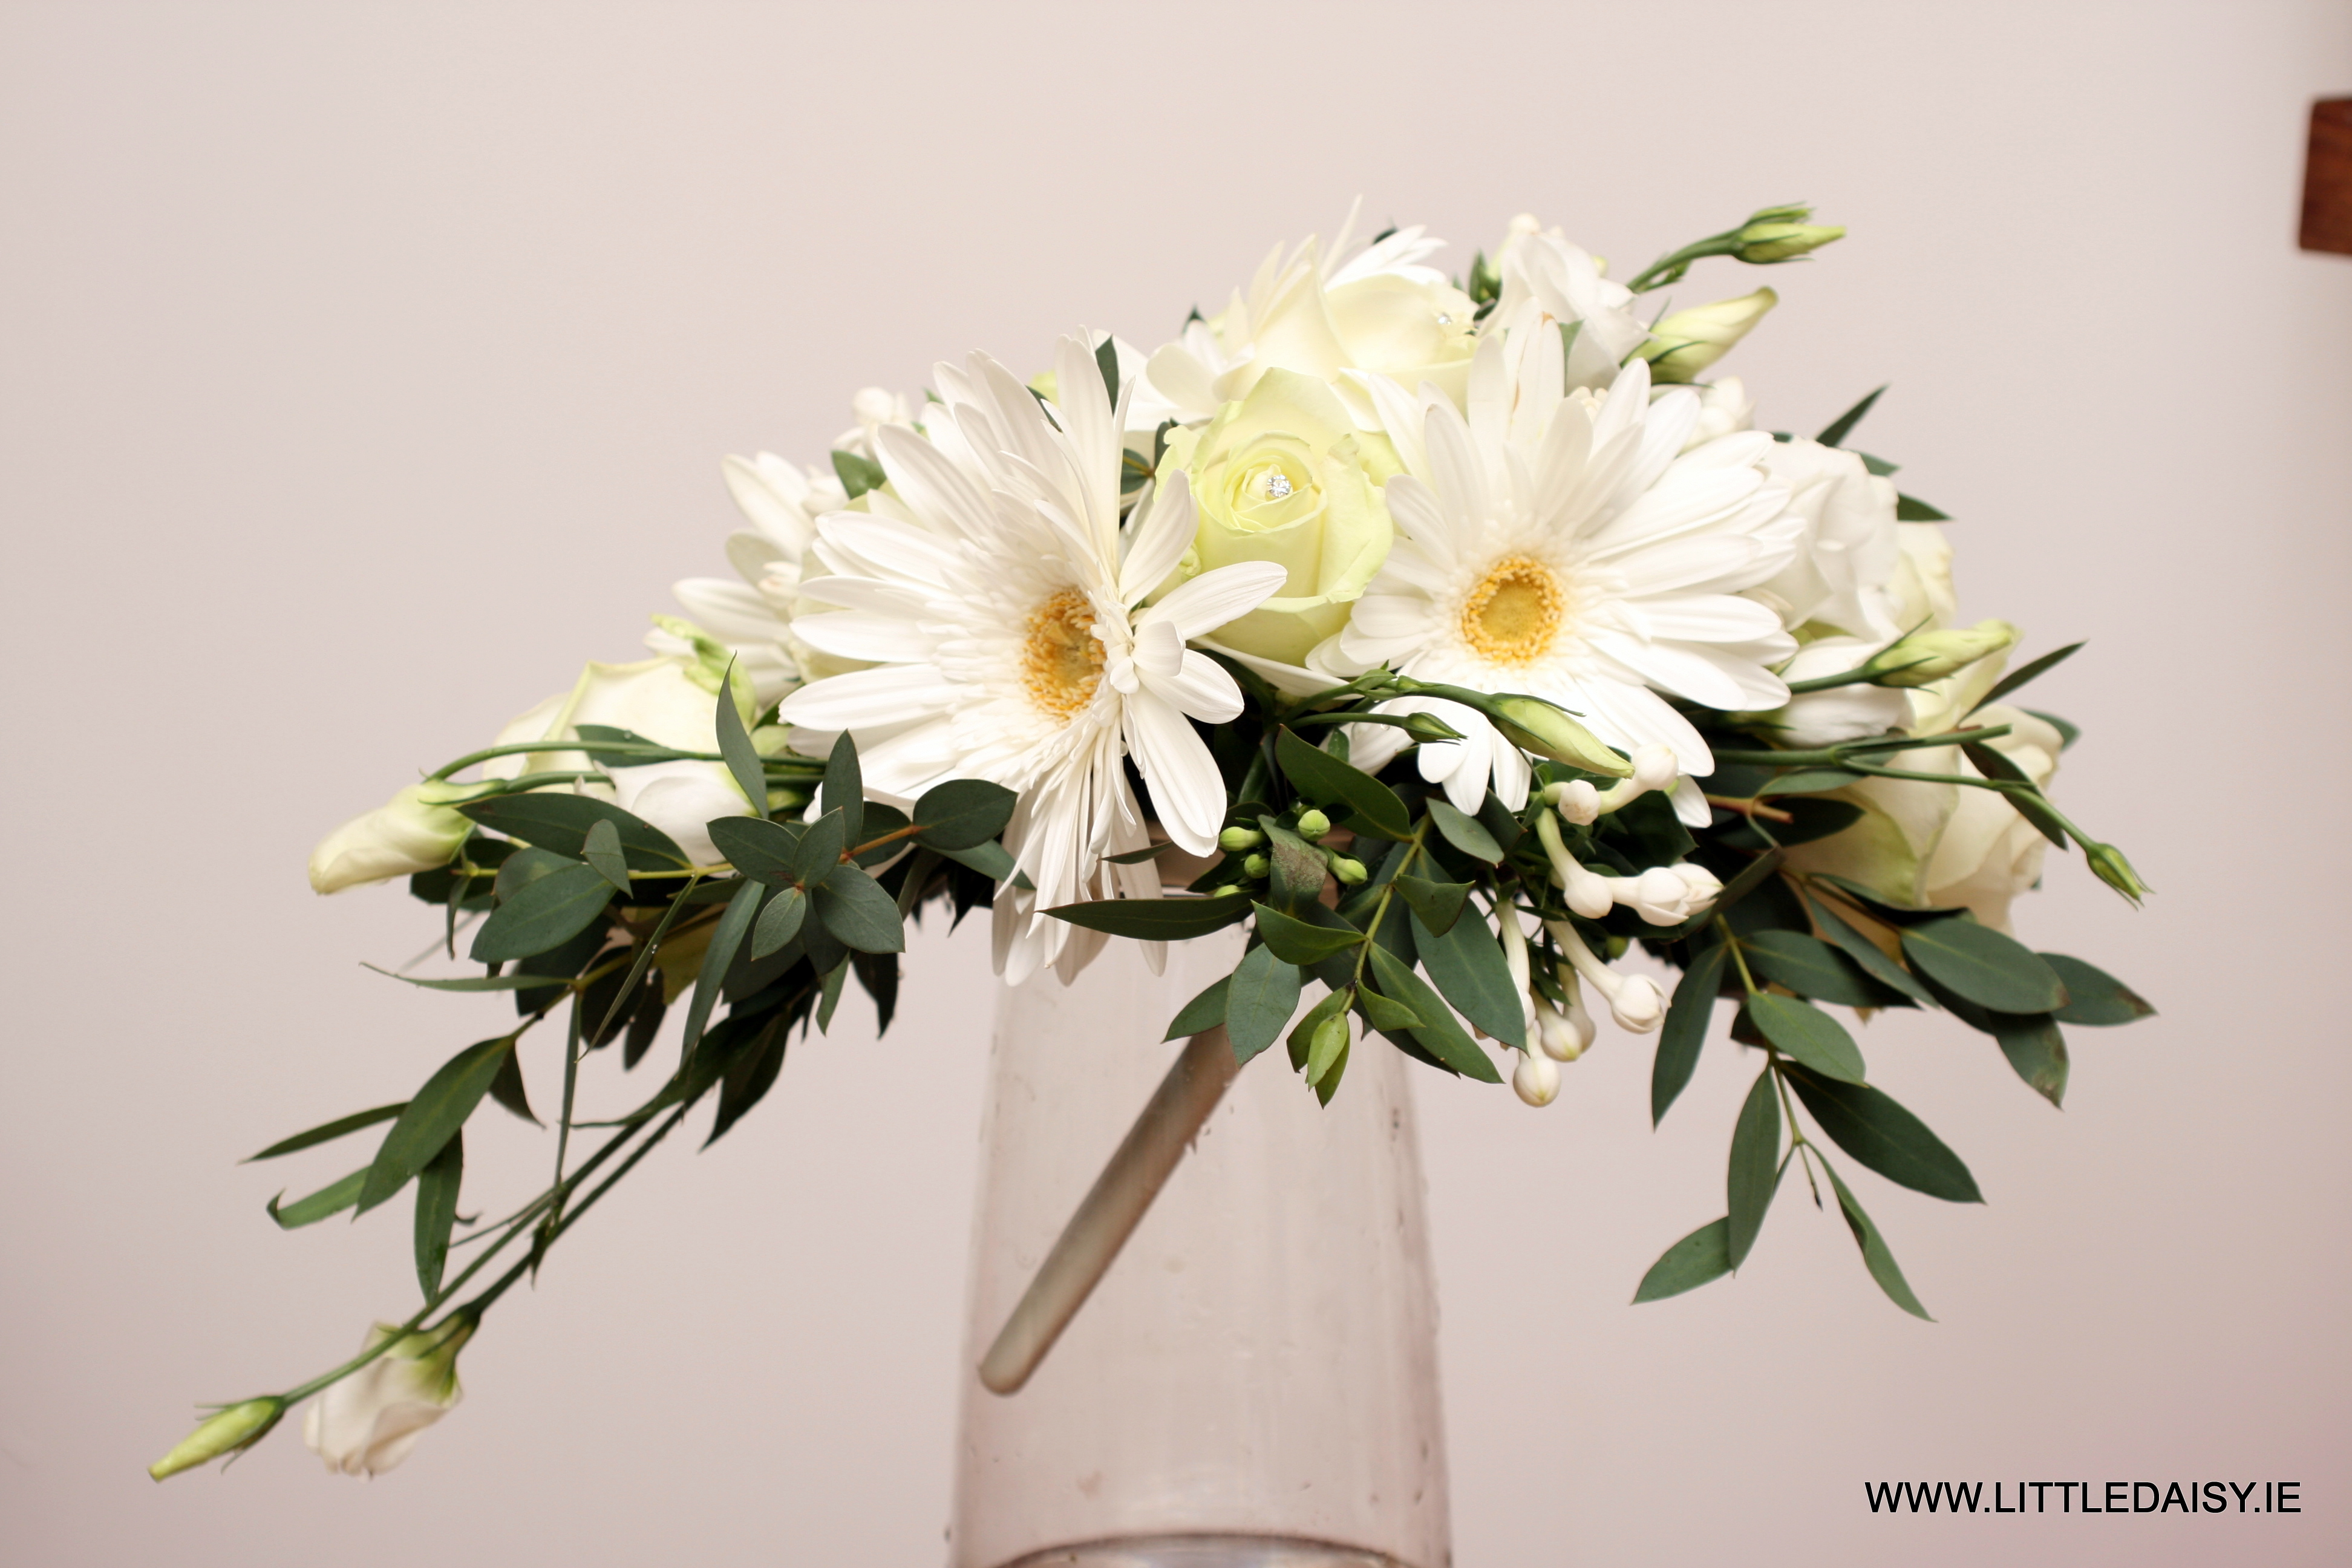 White daisy teardrop bouquet